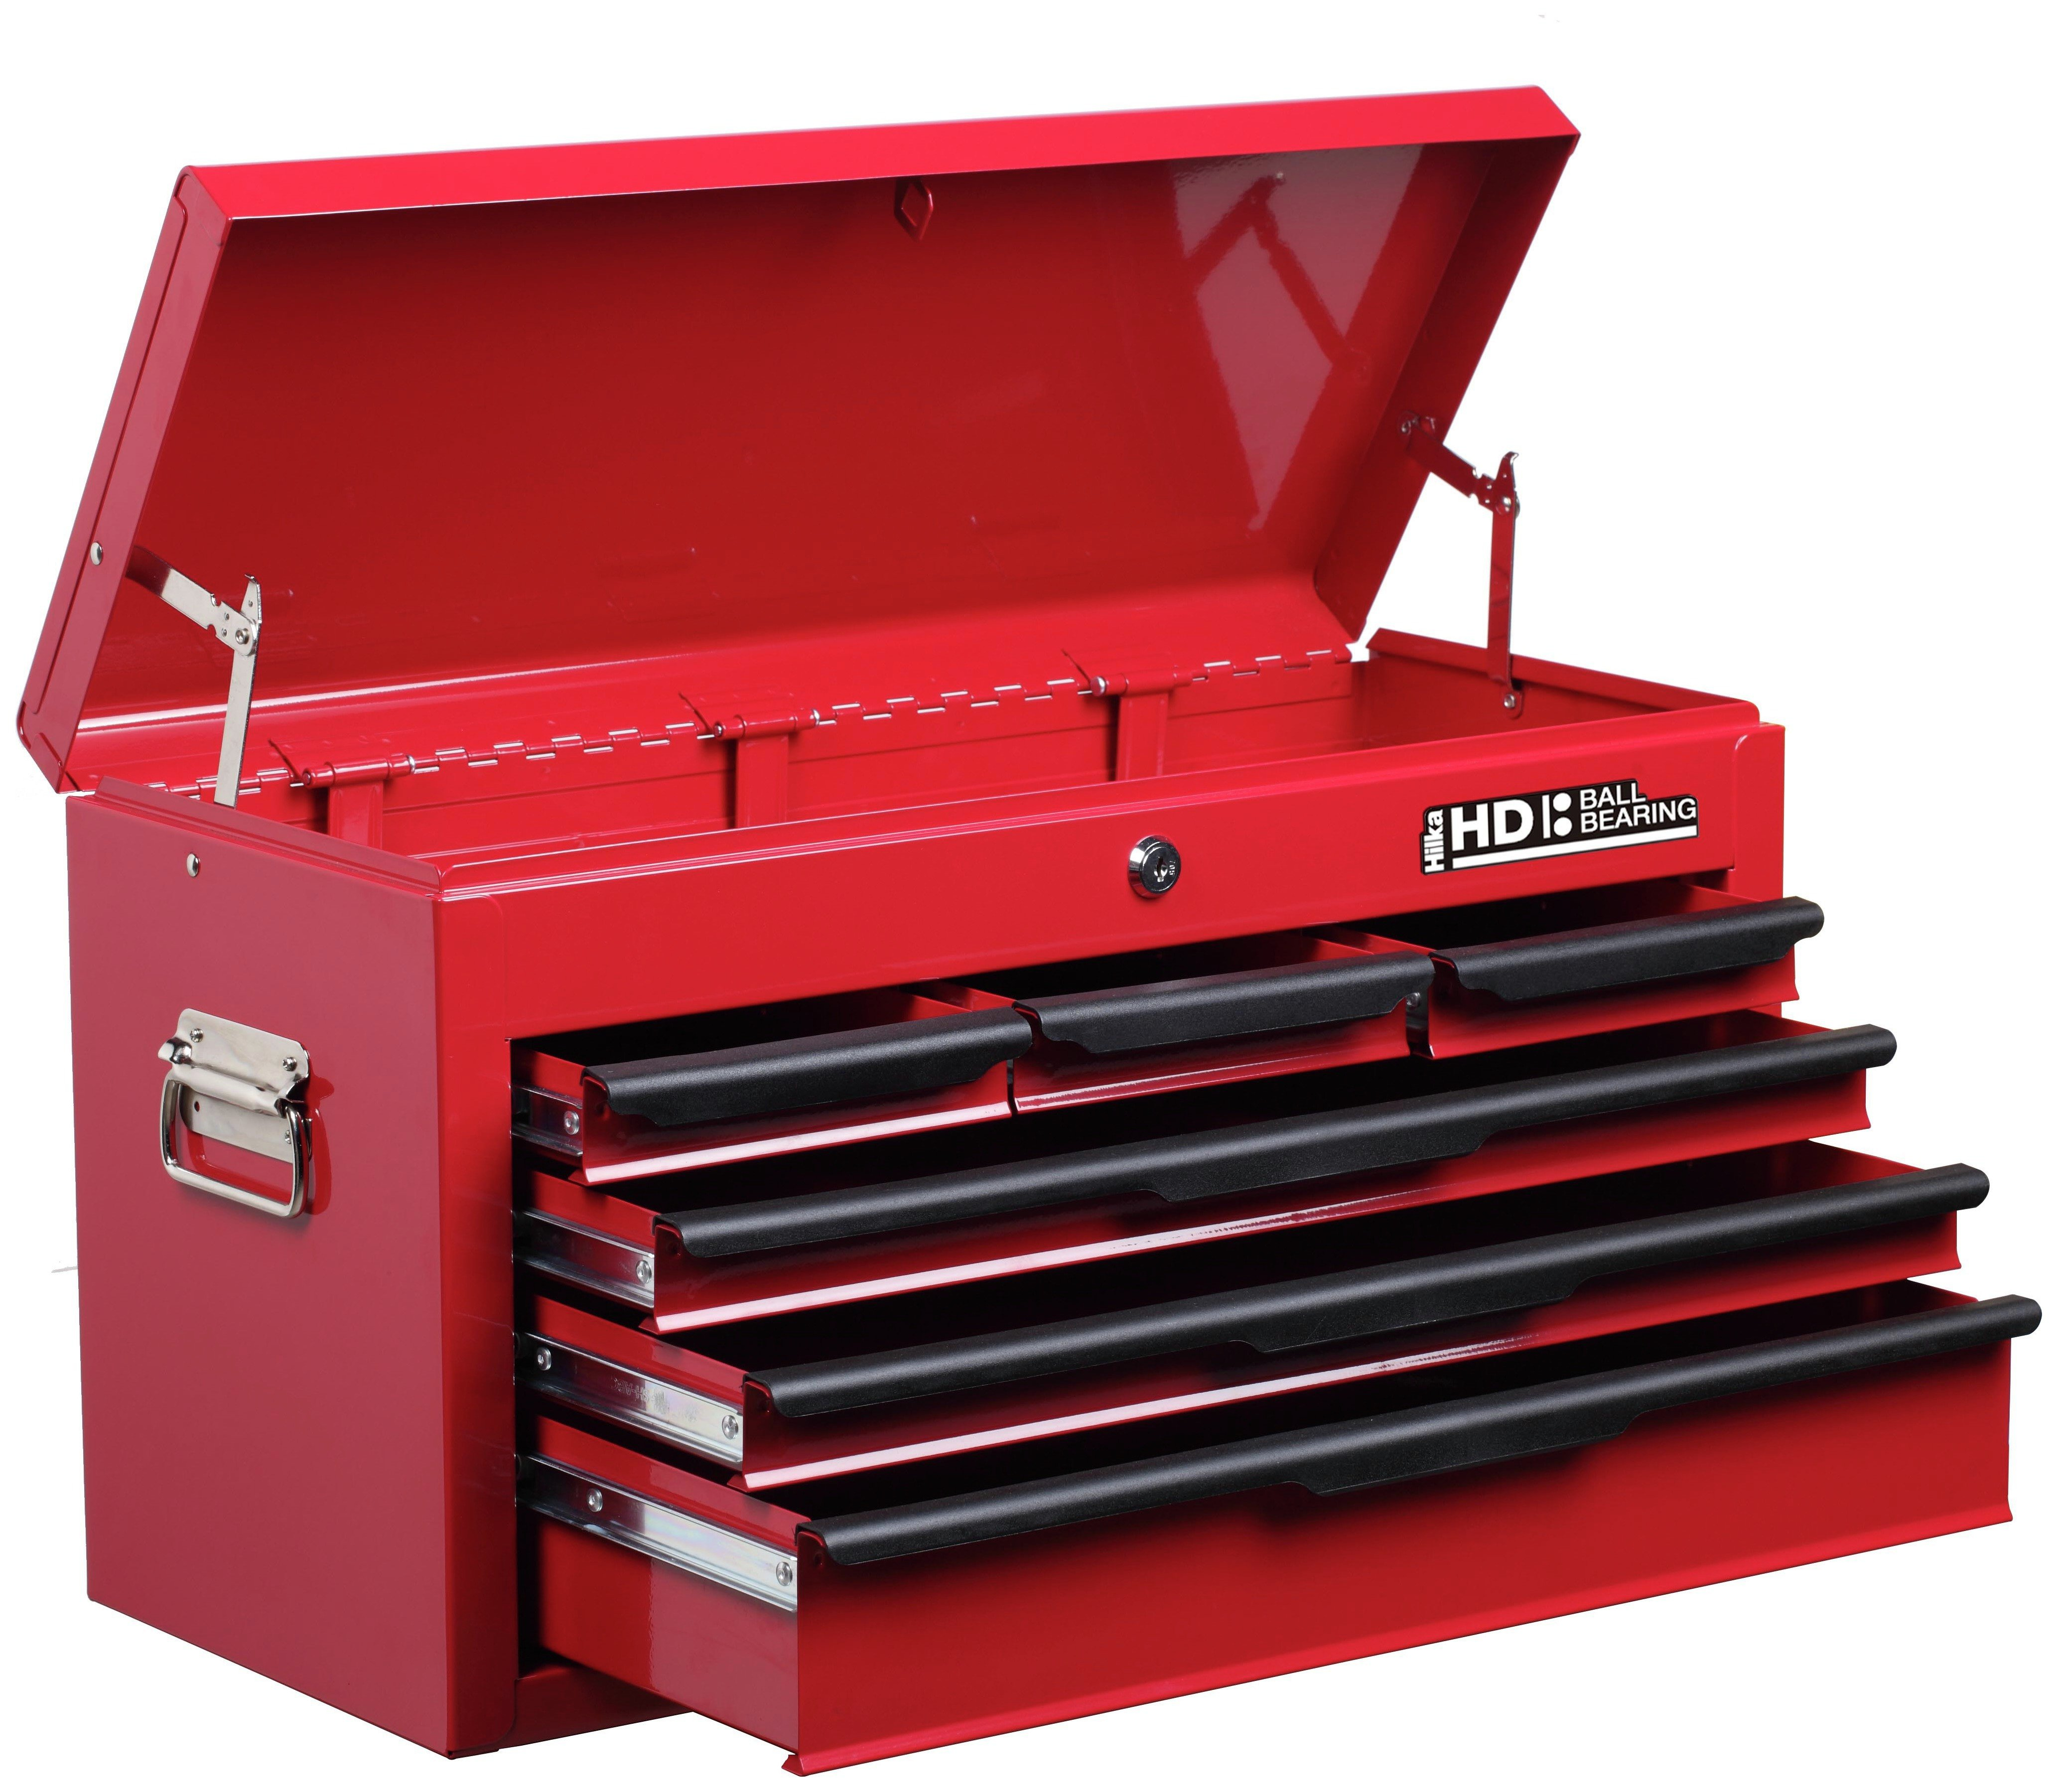 Hilka - 6 Drawer Tool Chest lowest price